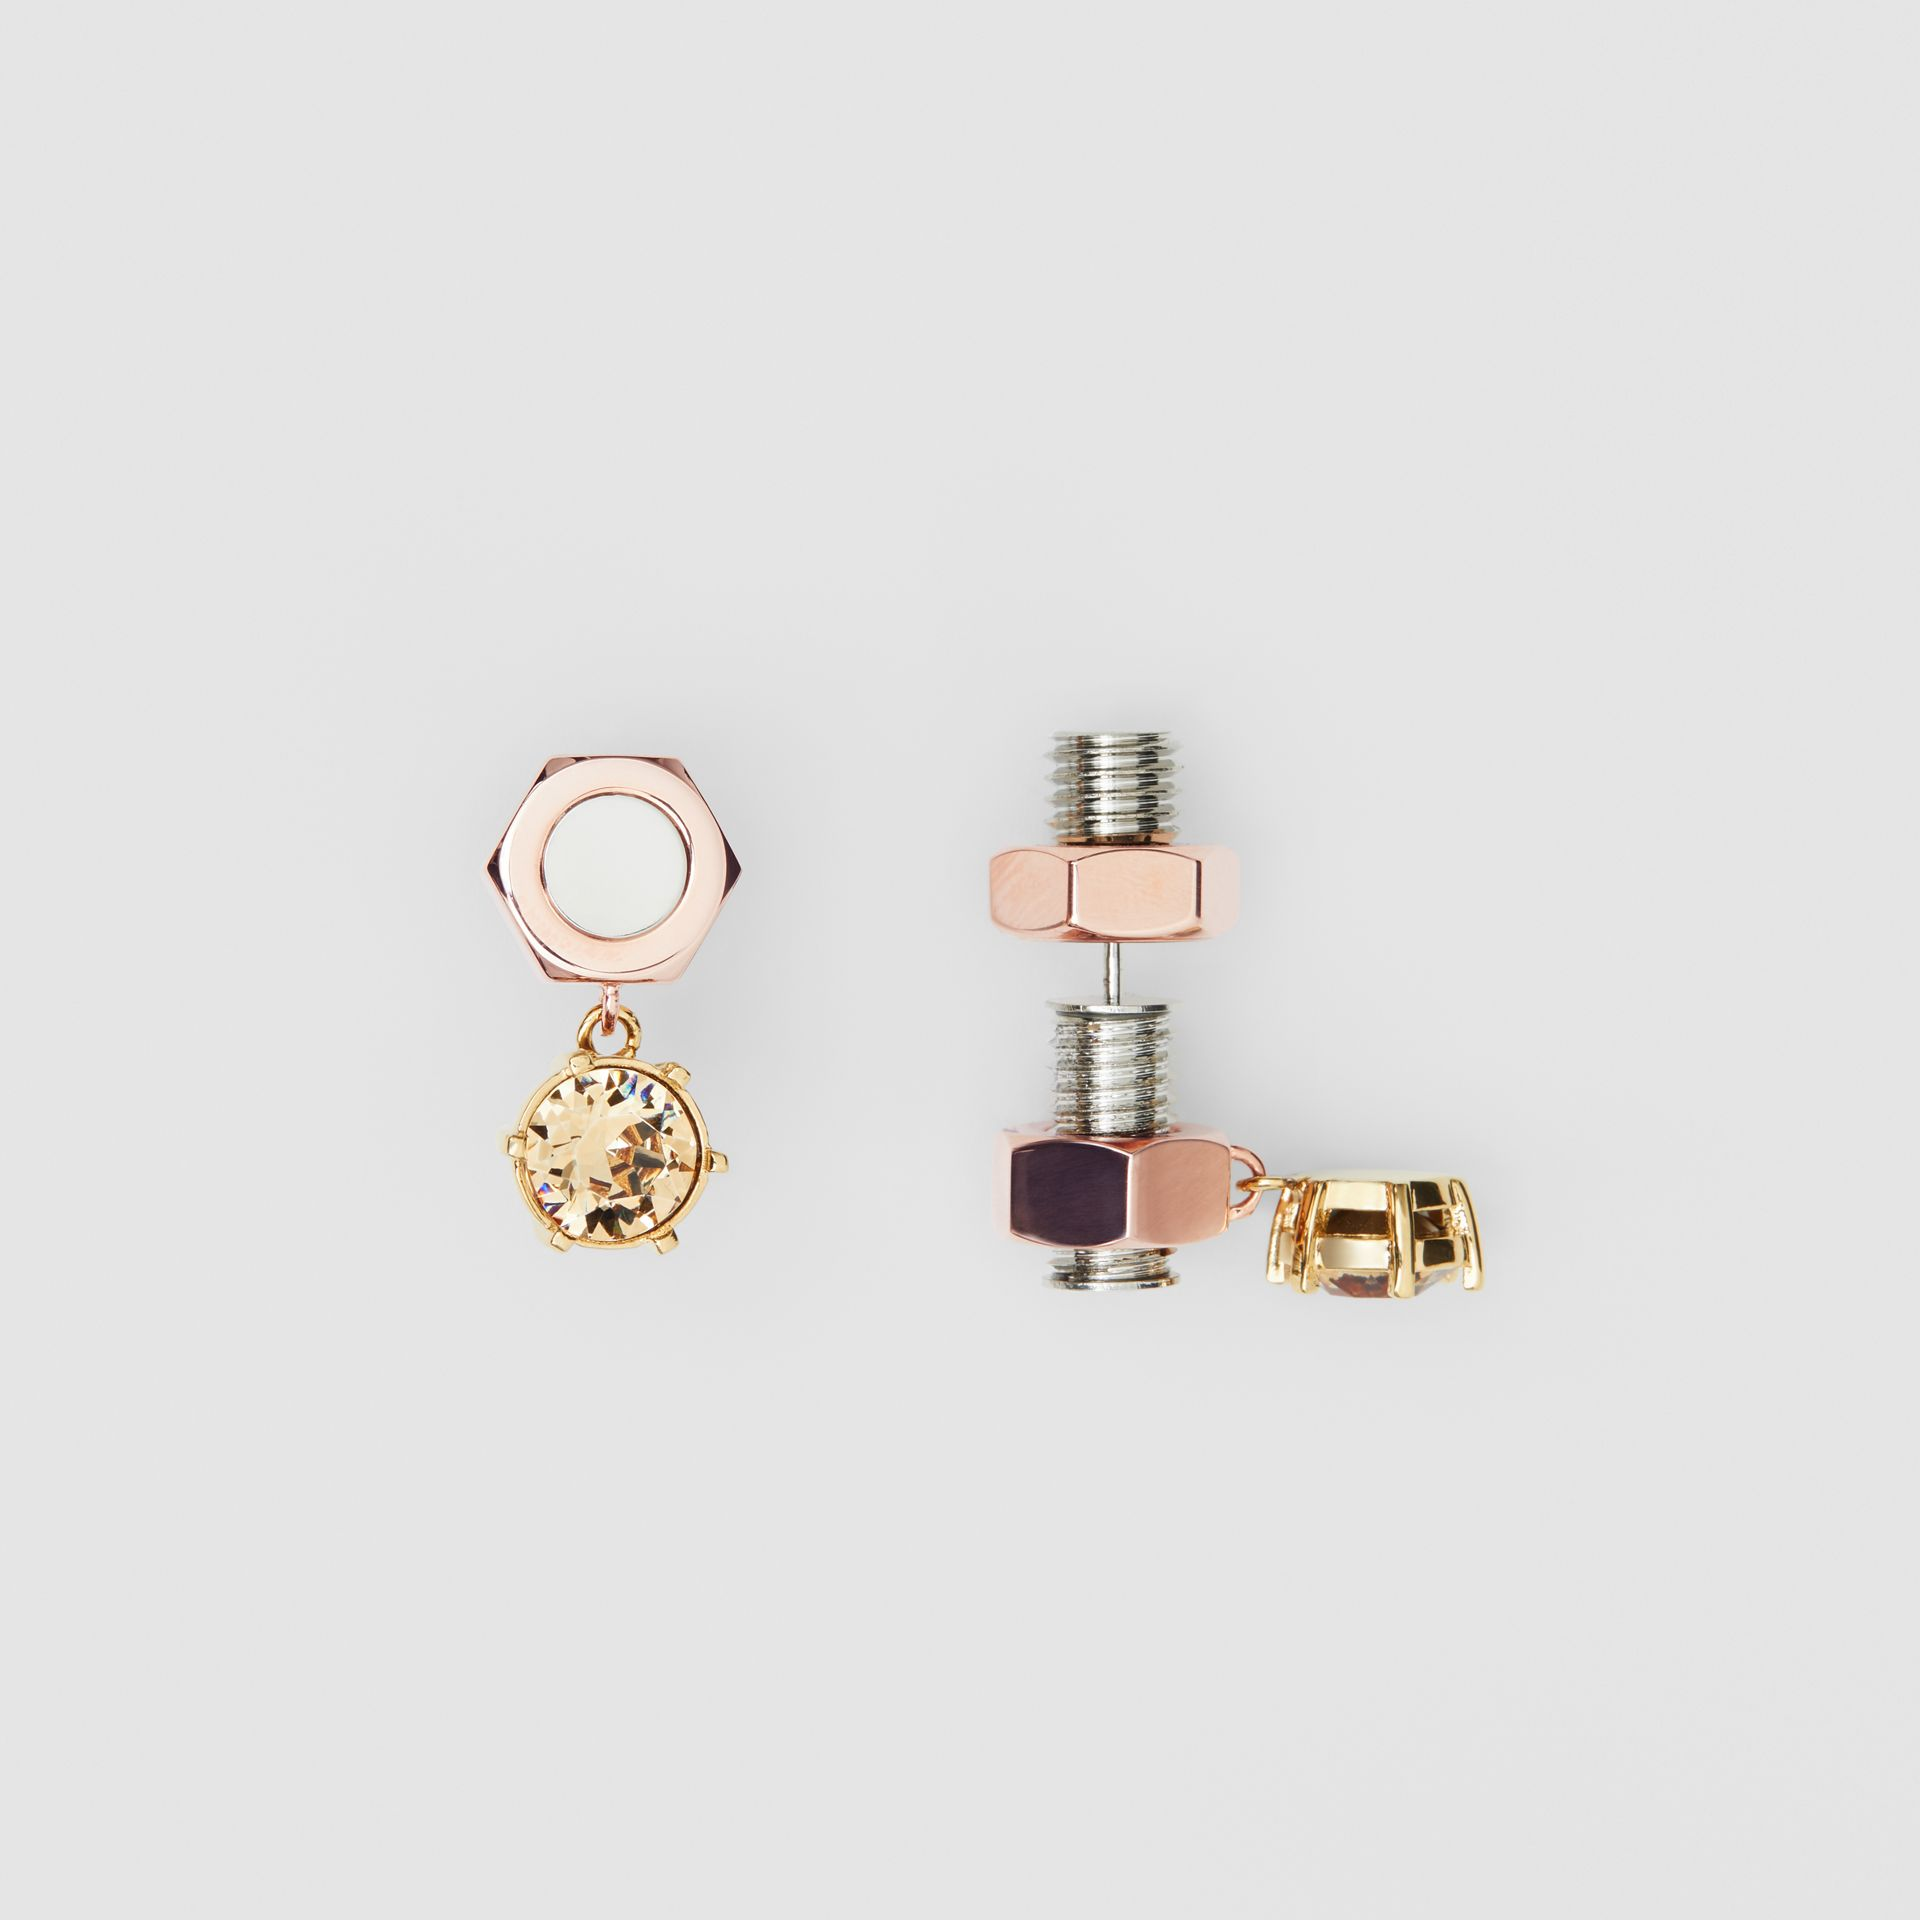 Crystal Charm Rose Gold-plated Nut and Bolt Earrings in Gold/palladium - Women | Burberry - gallery image 2